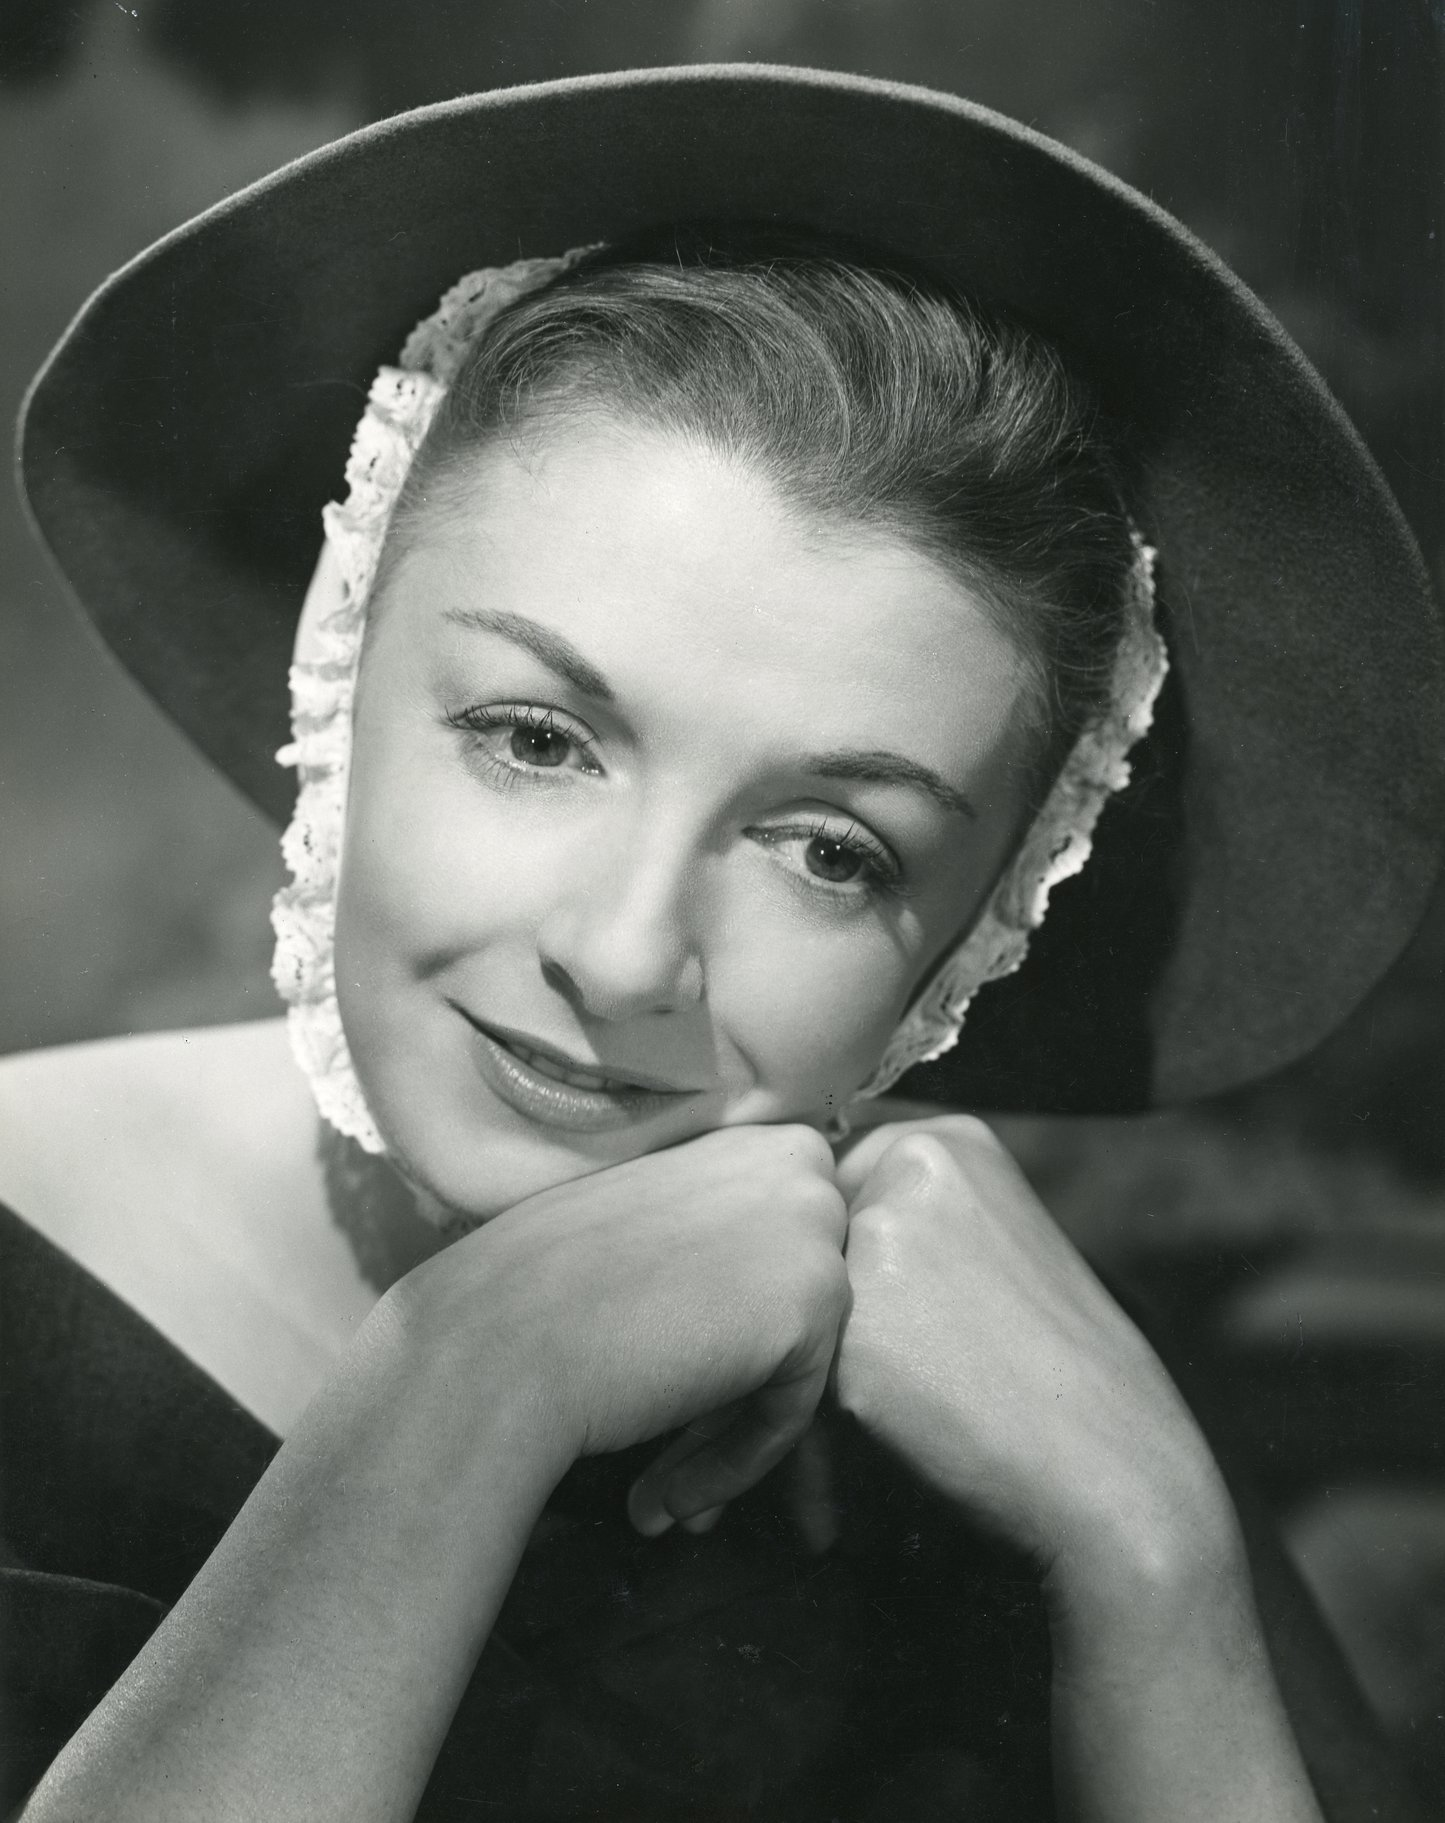 A woman in a hat rests her cheek on her hands.